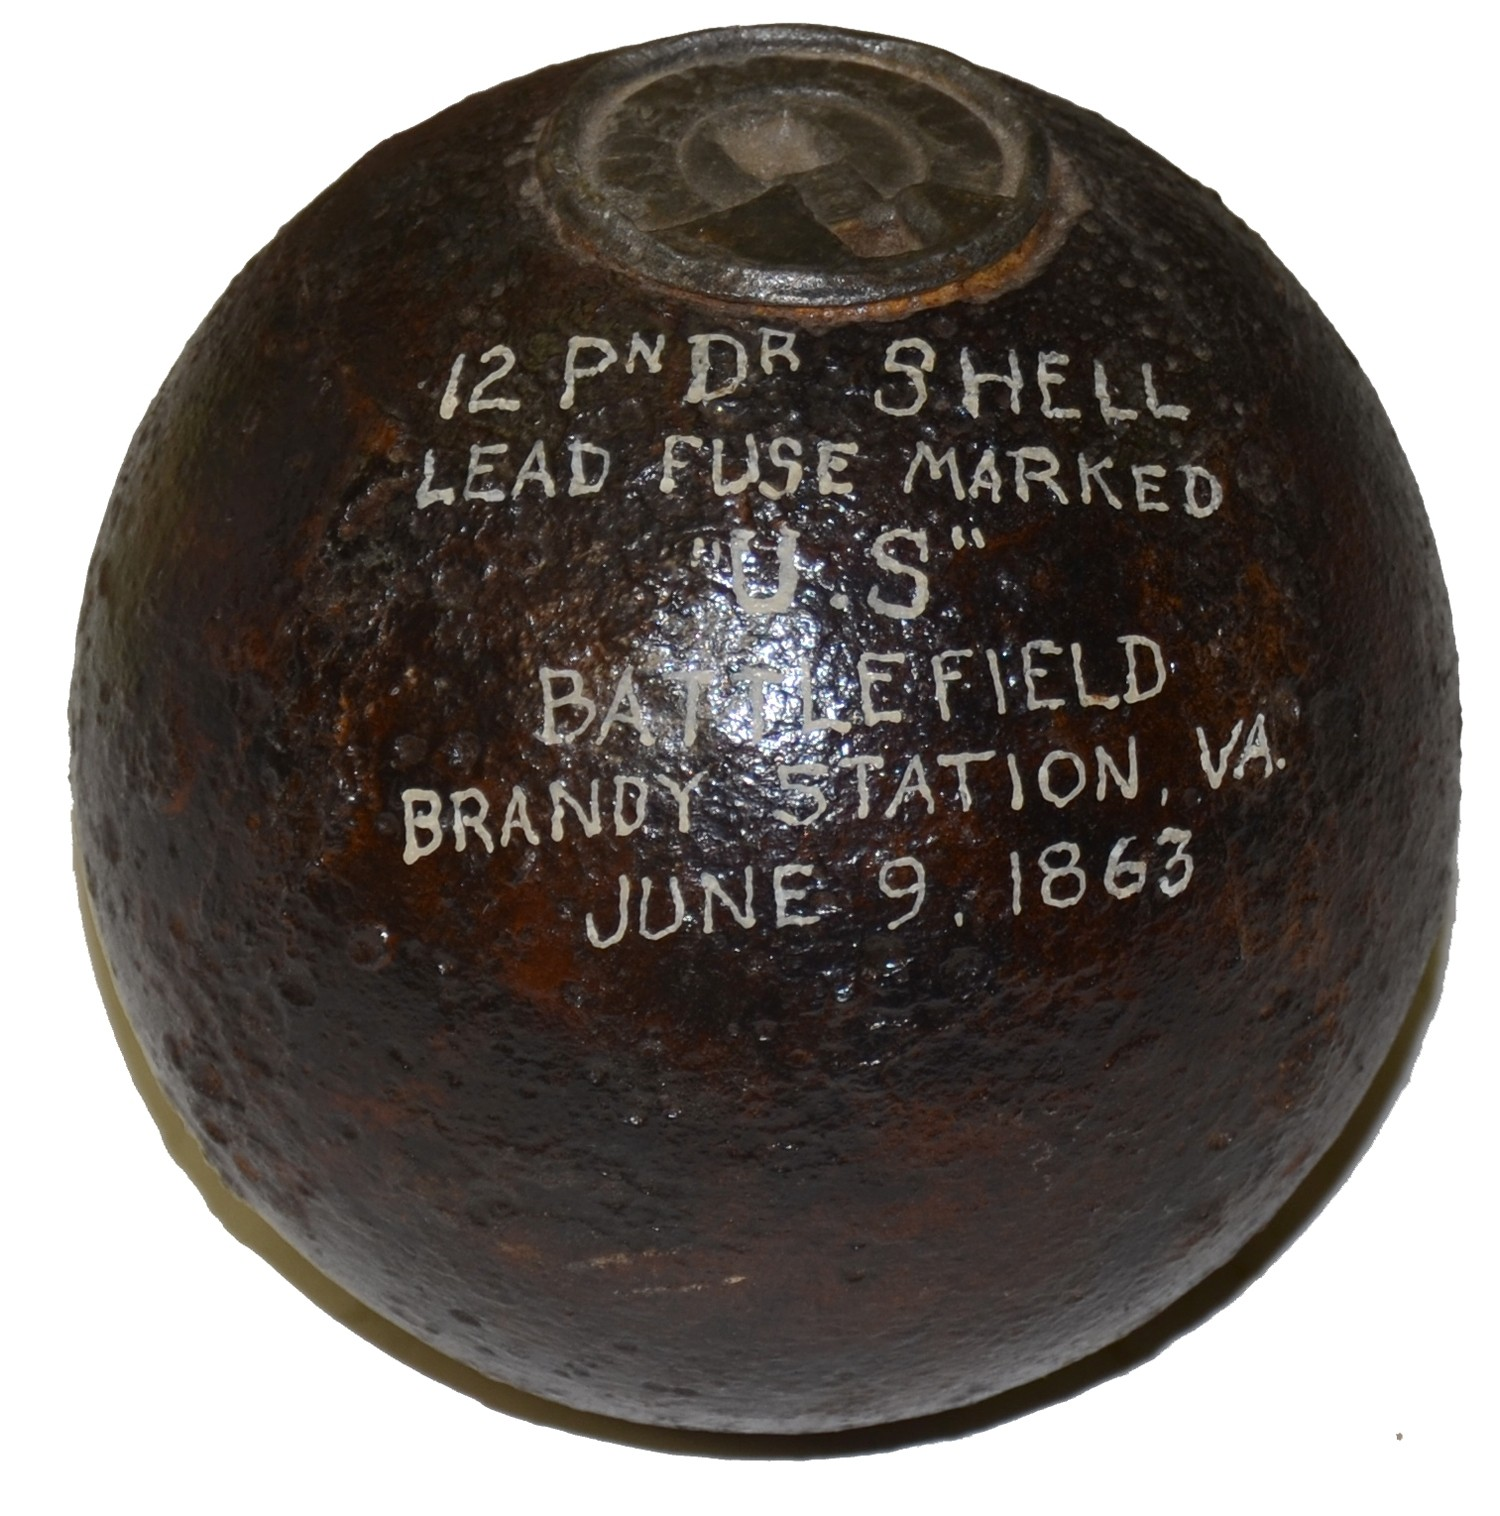 US 4.52 INCH 12 POUND SPHERICAL BORMANN FUSED SHELL RECOVERED AT BRANDY STATION, VA